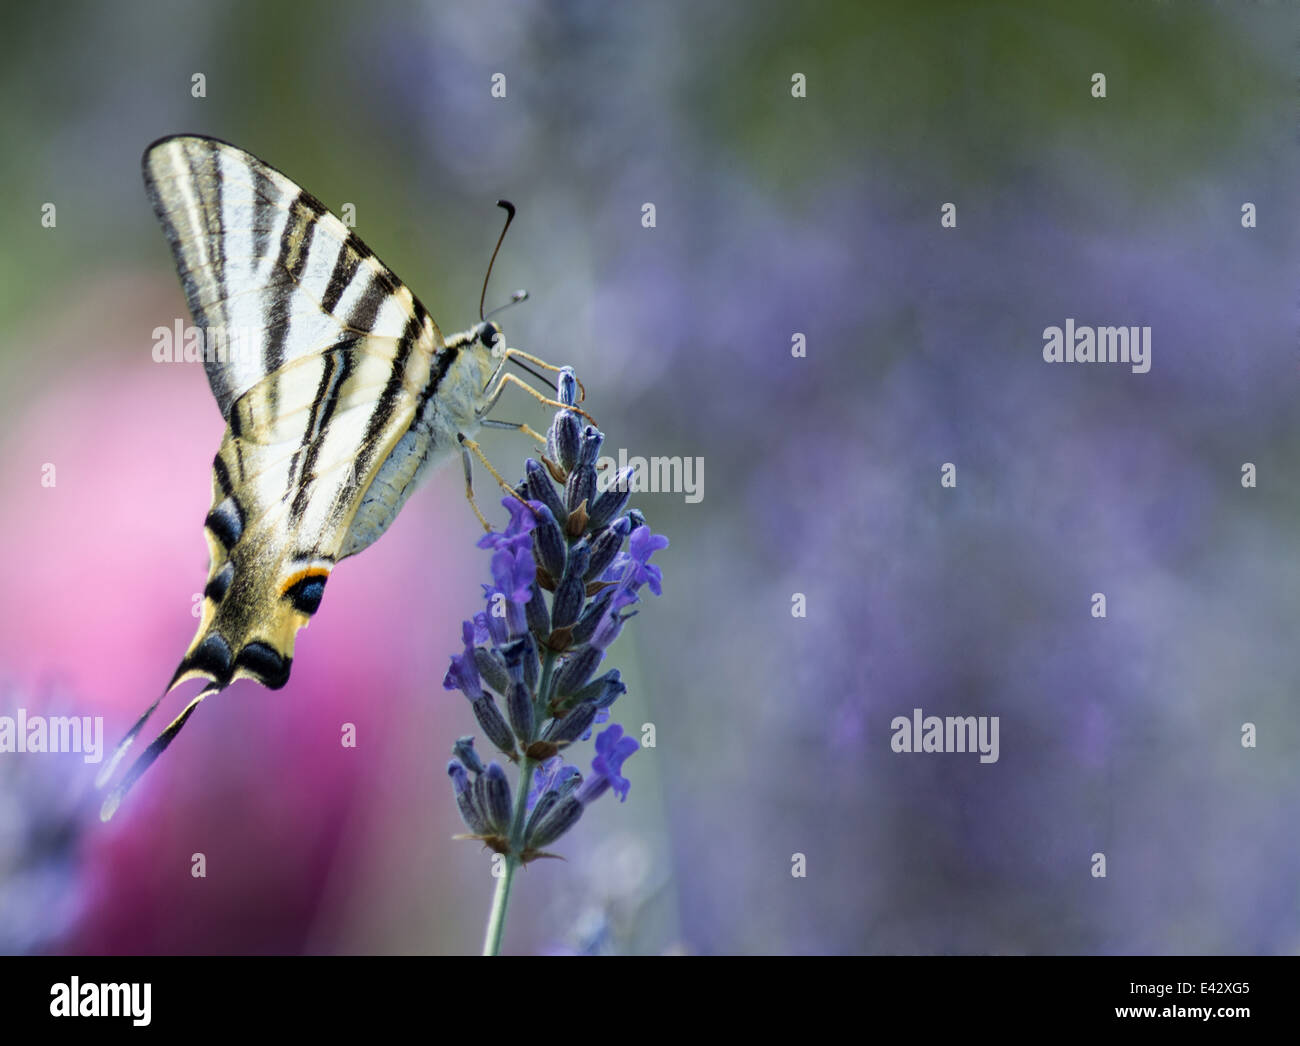 Close up of a Swallowtail butterfly feeding on flowers - Stock Image